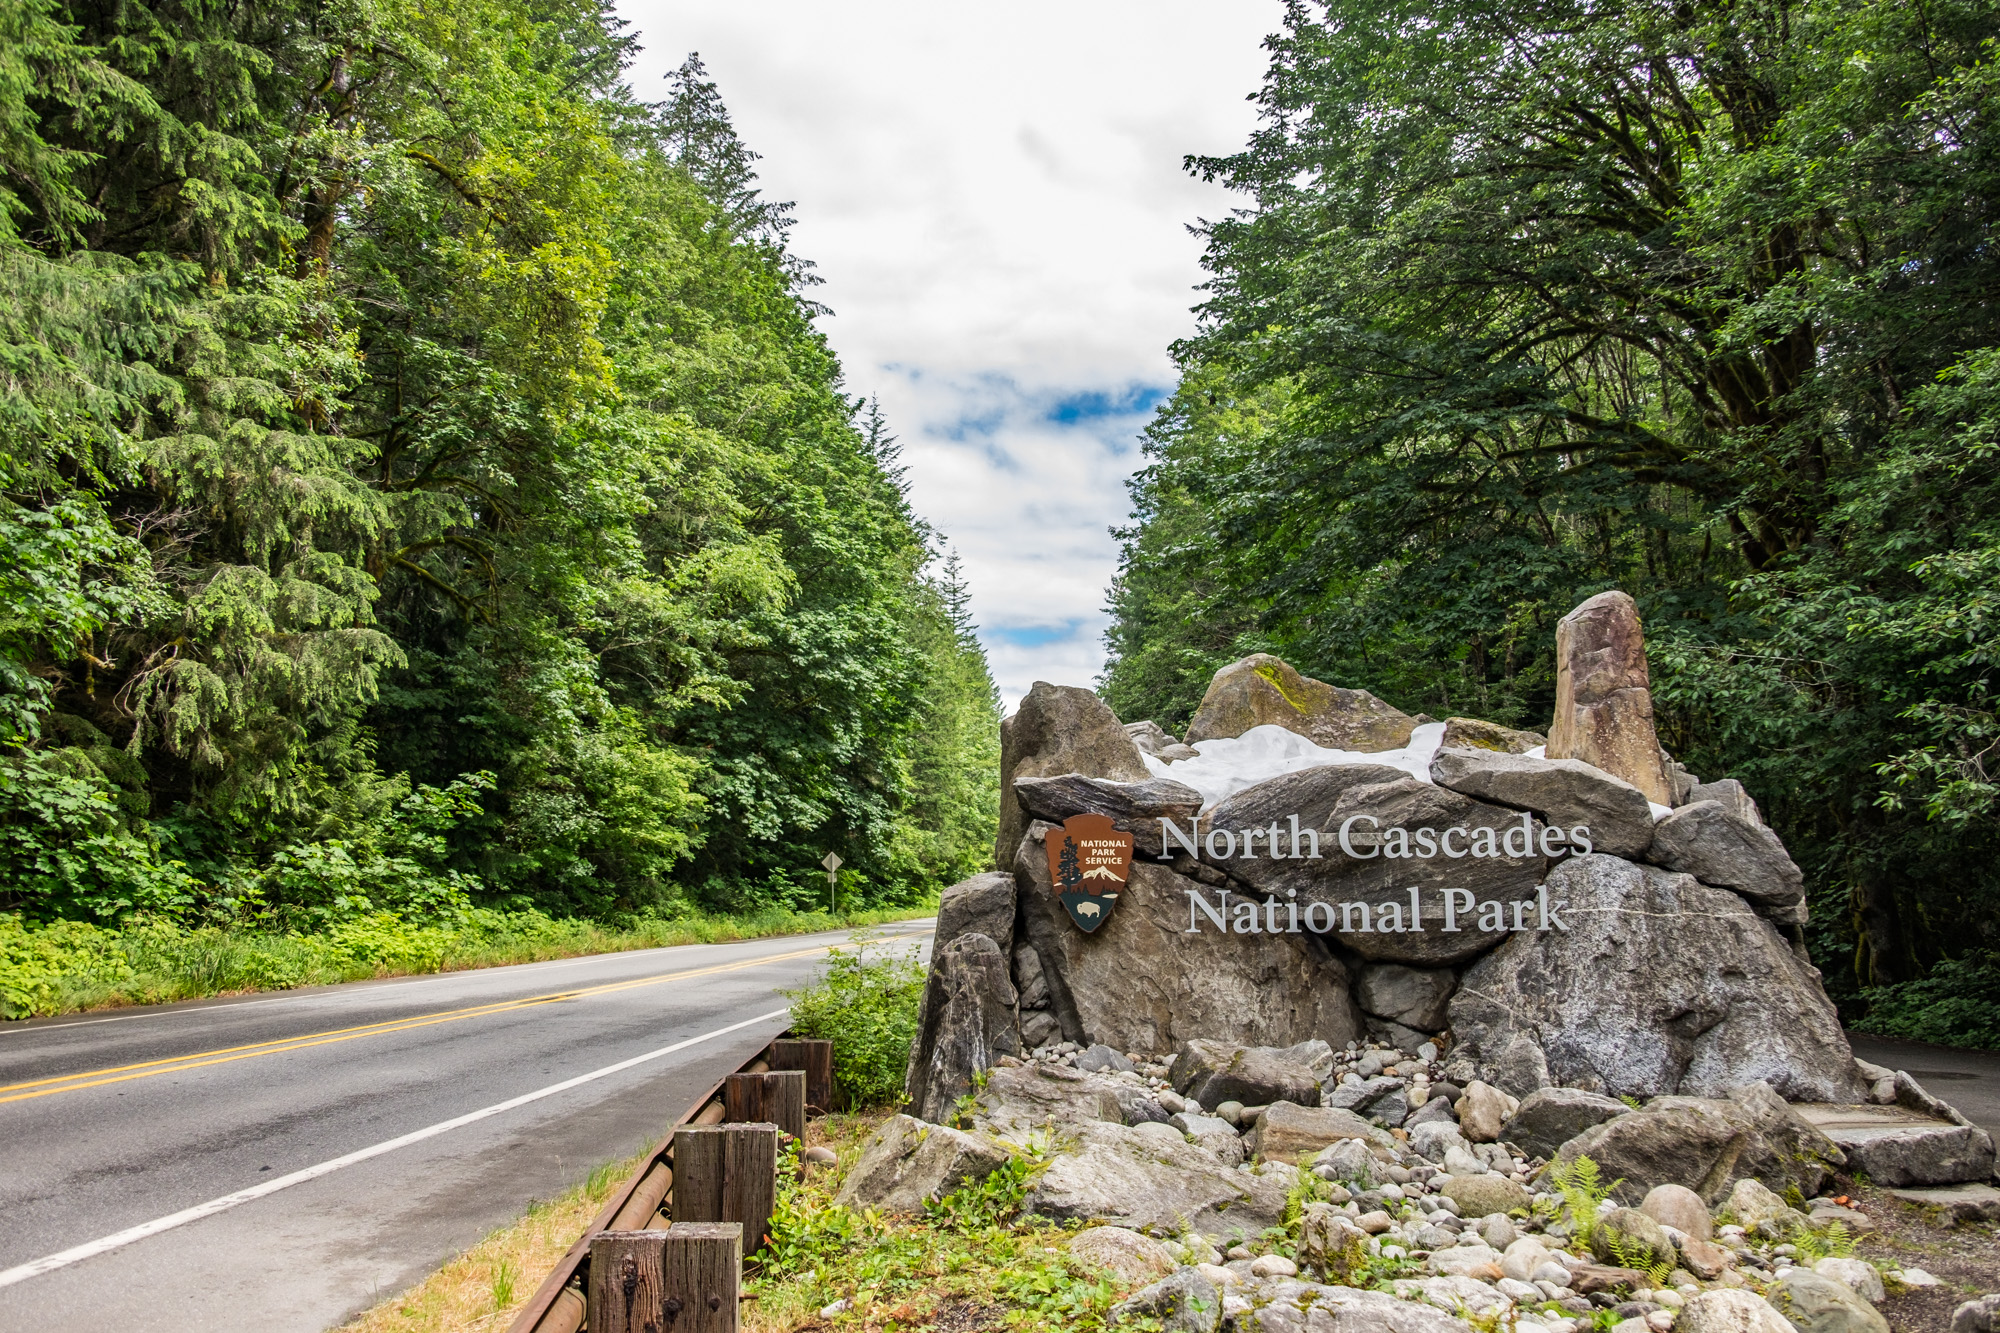 We love Washington state and were so excited to start exploring North Cascades National Park.